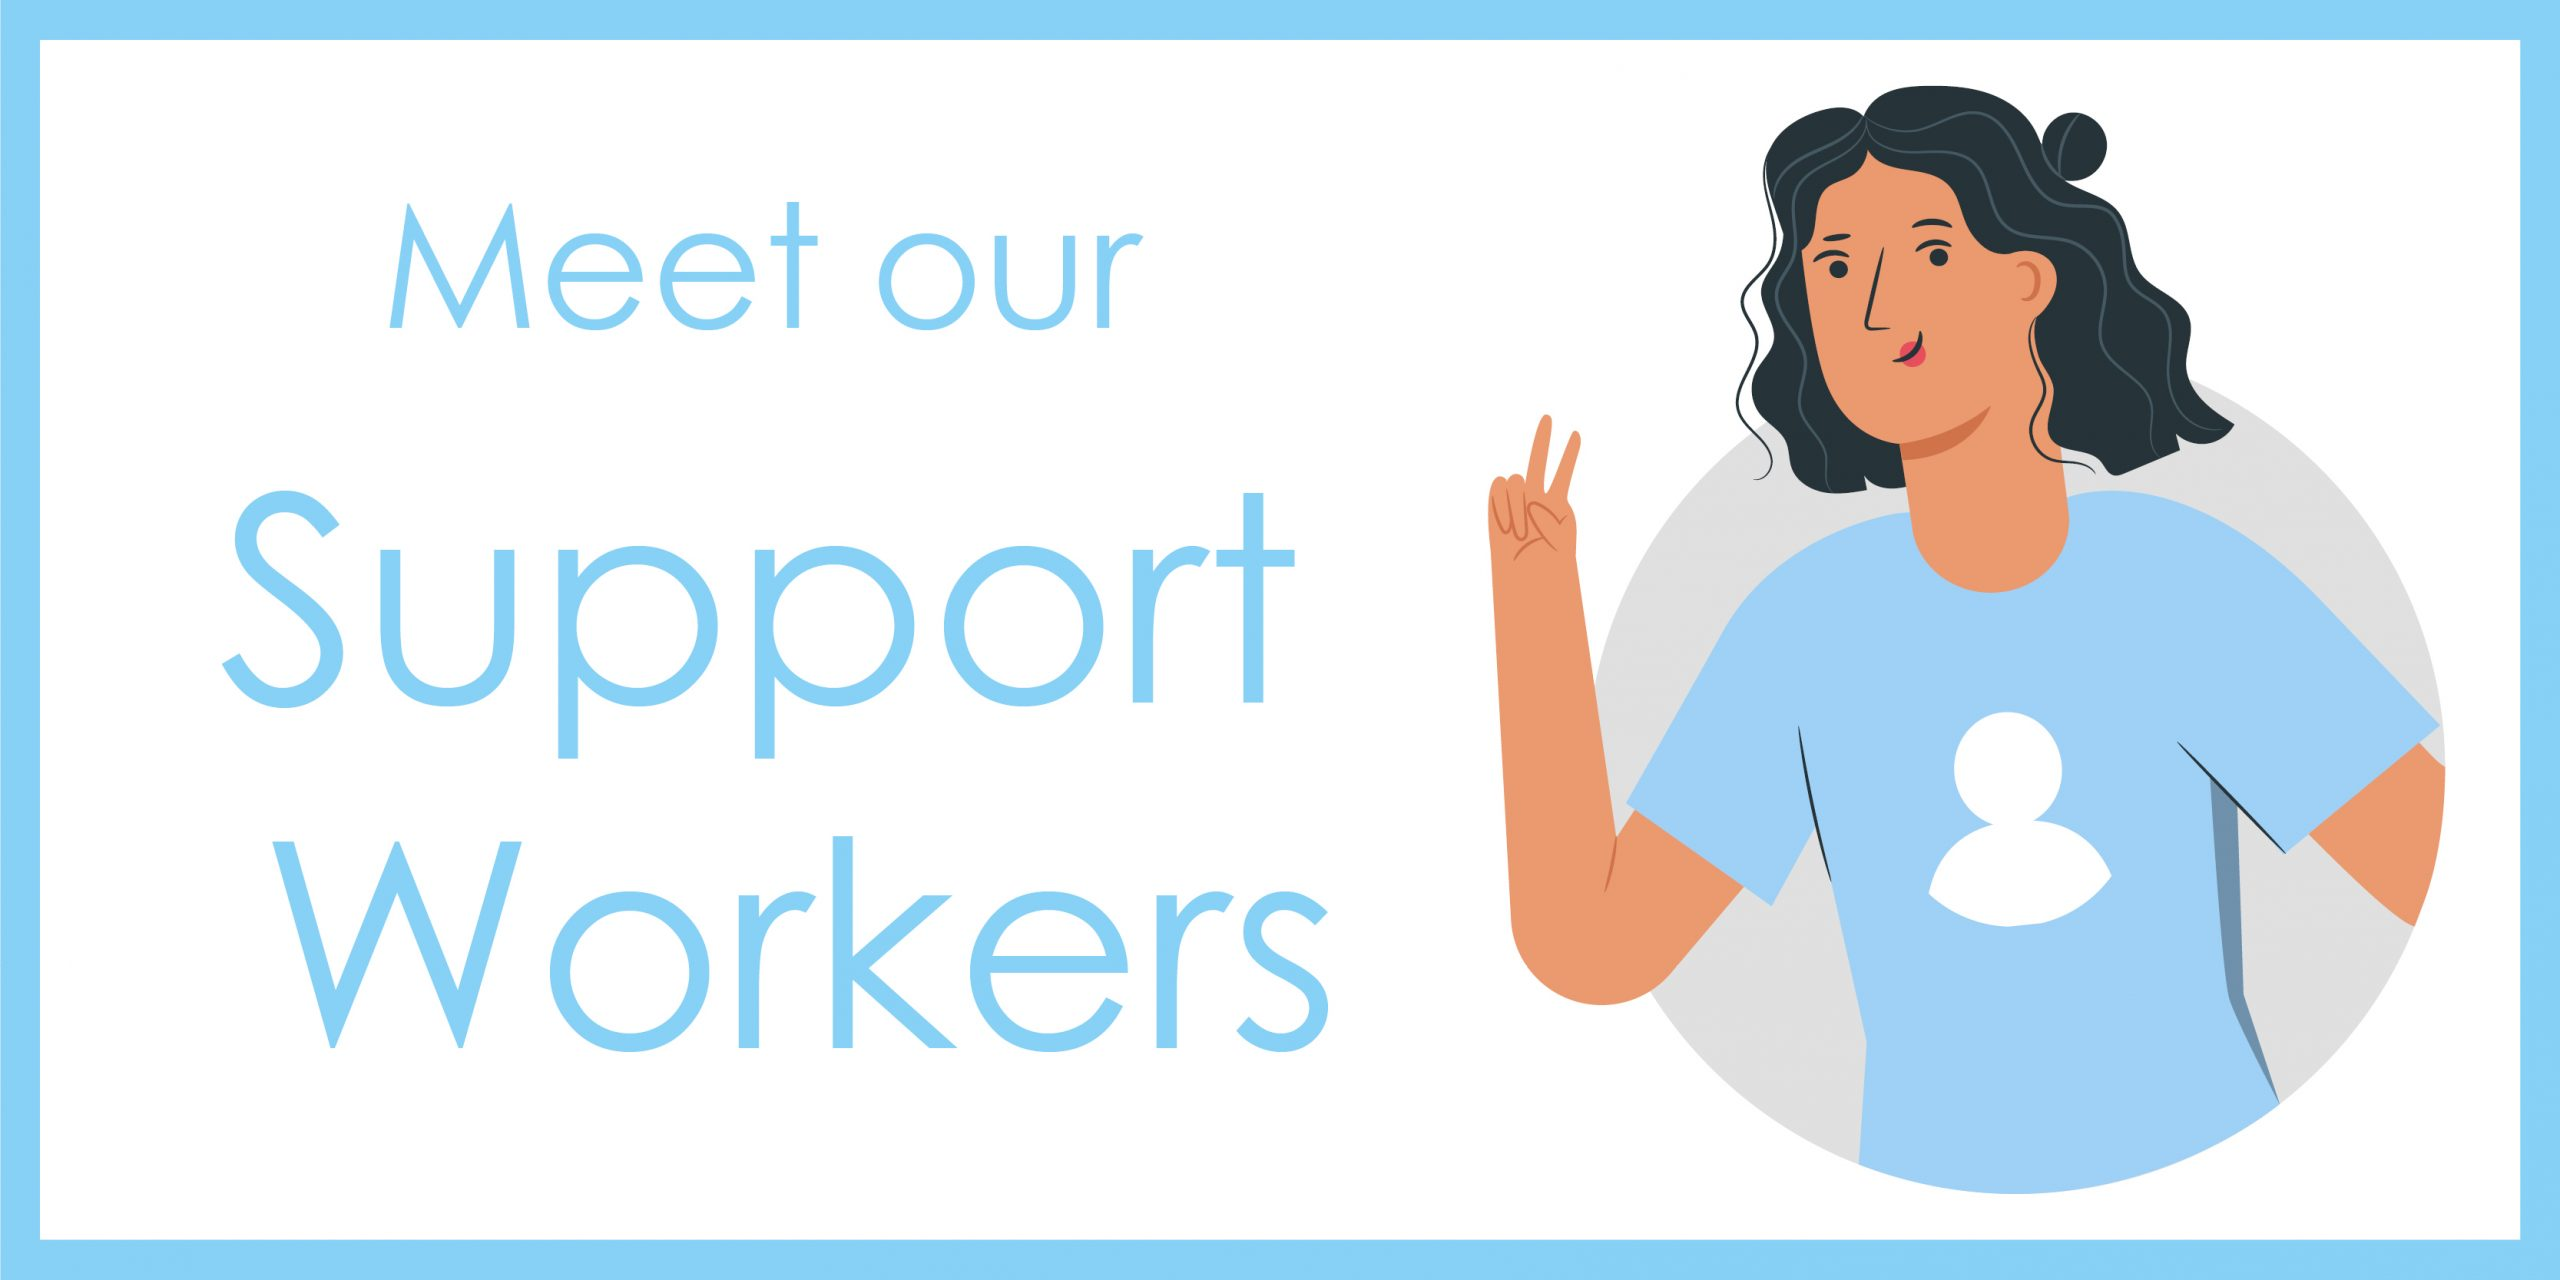 Meet our Support Workers